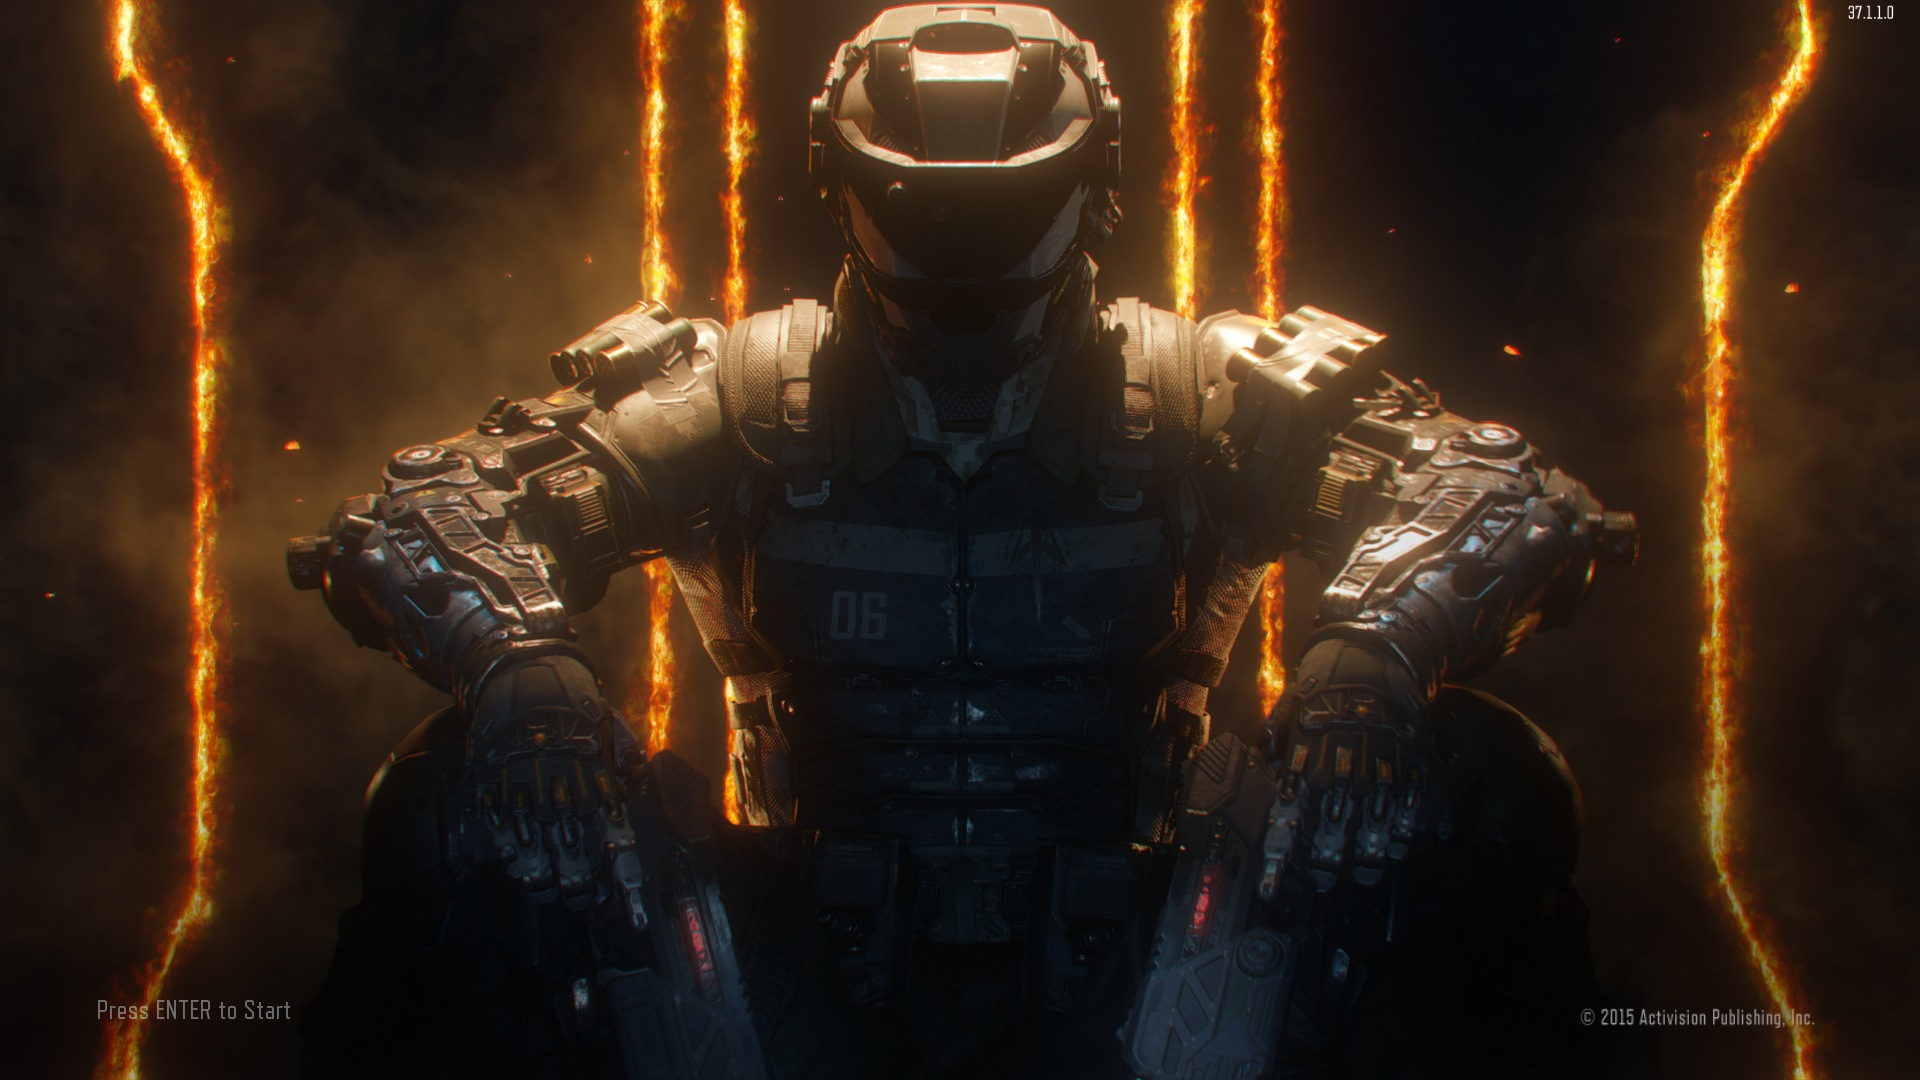 Call of Duty Black Ops III HD Wallpaper 4 1920 X 1080